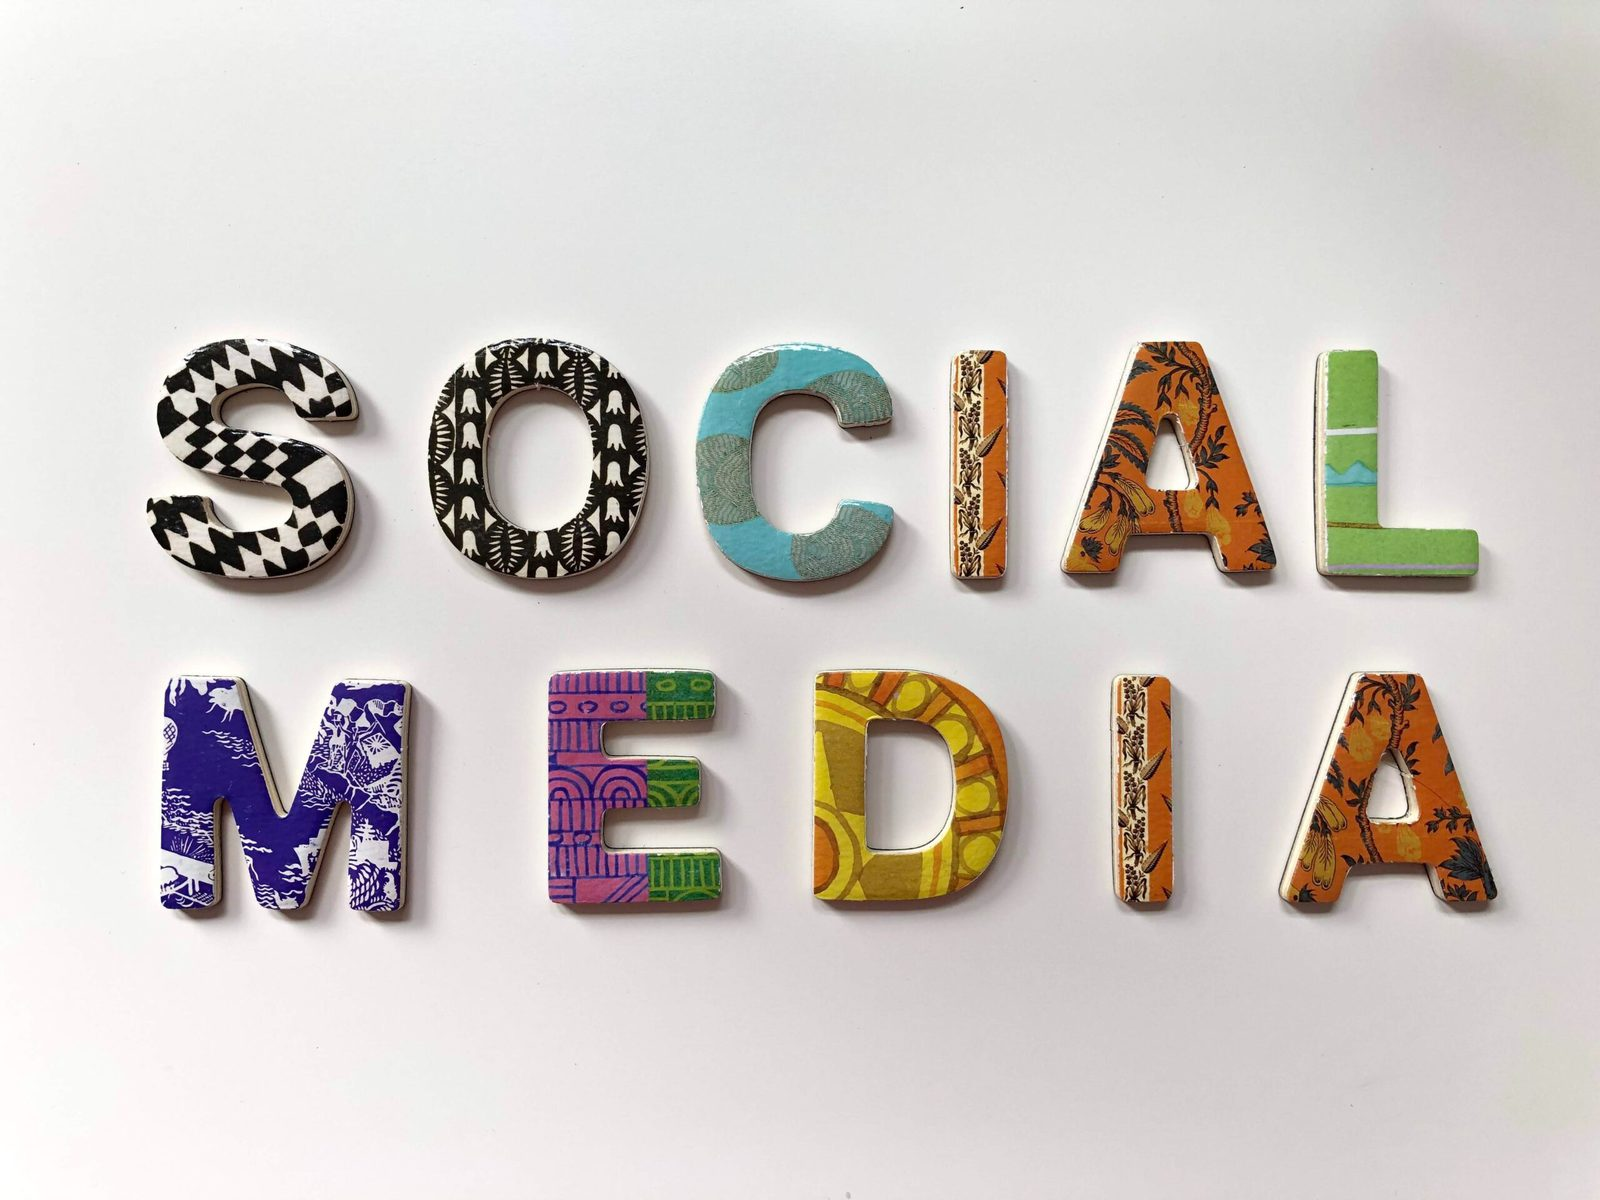 5 benefits of putting your business on social media